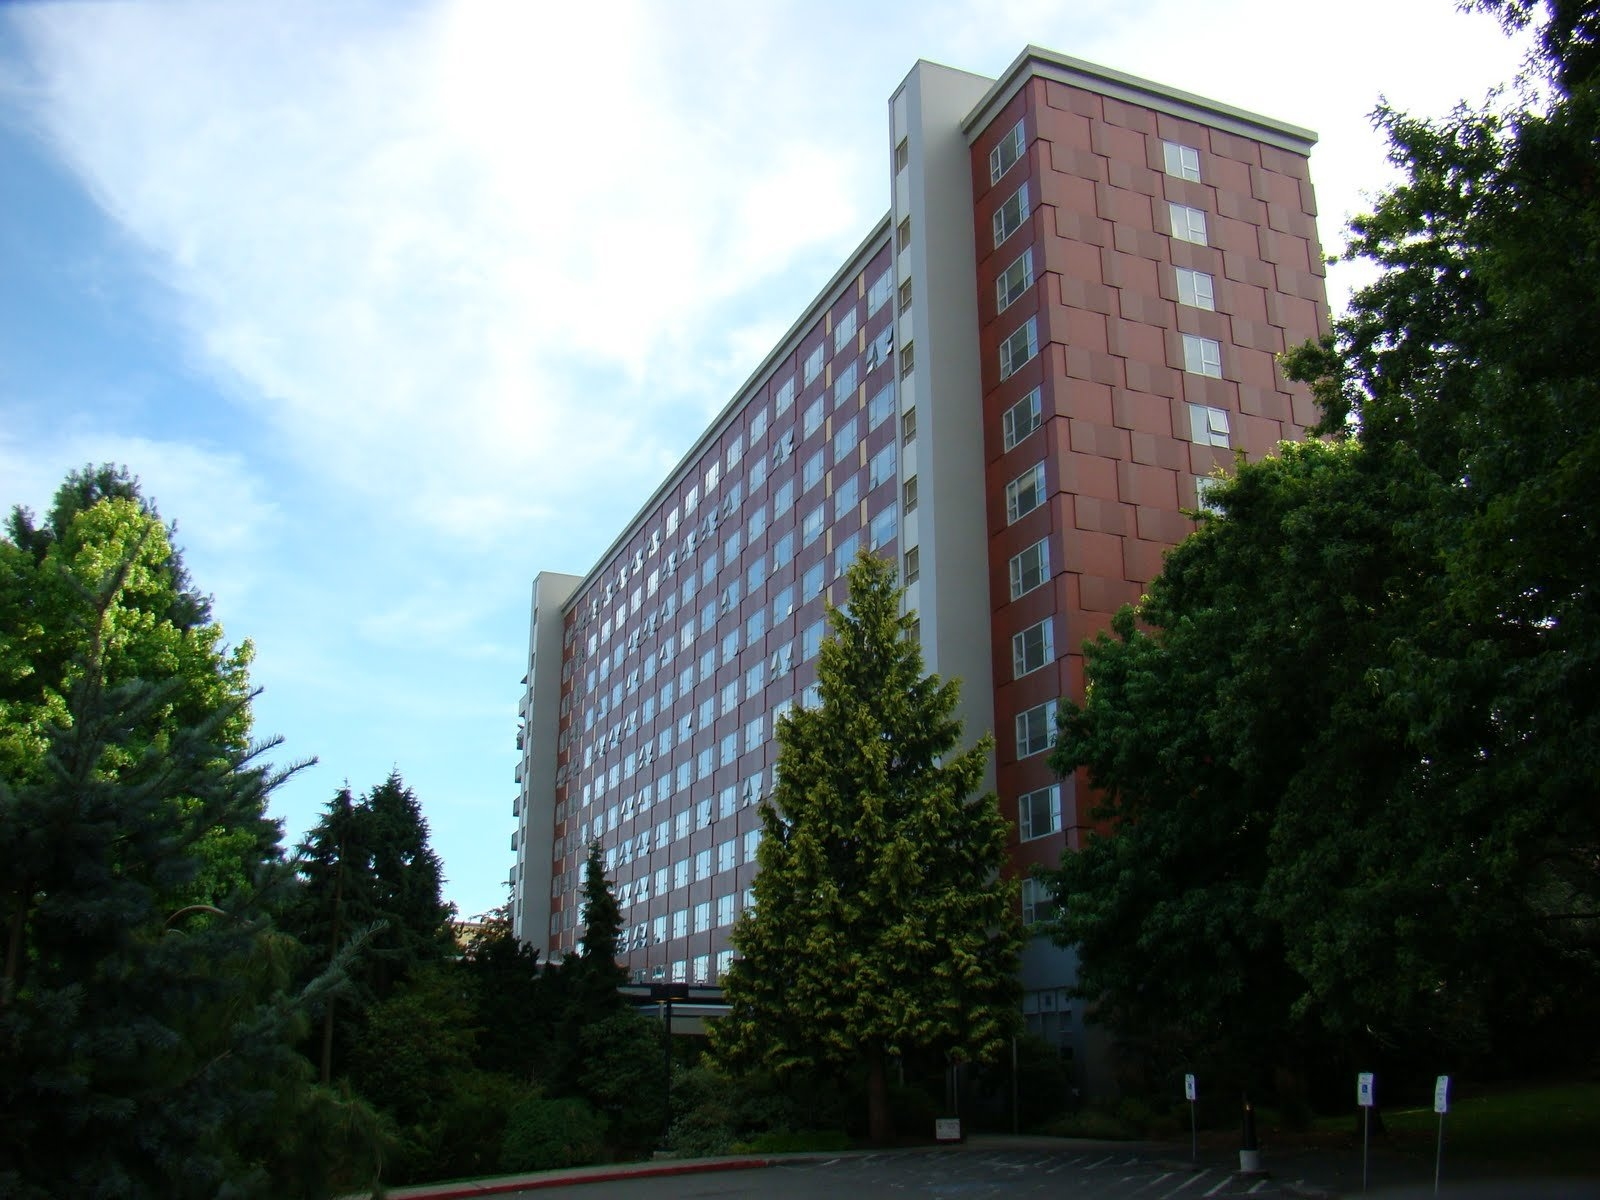 Campion Hall - Residences - Housing And Residence Life - Seattle Seattle U Calendar 2019